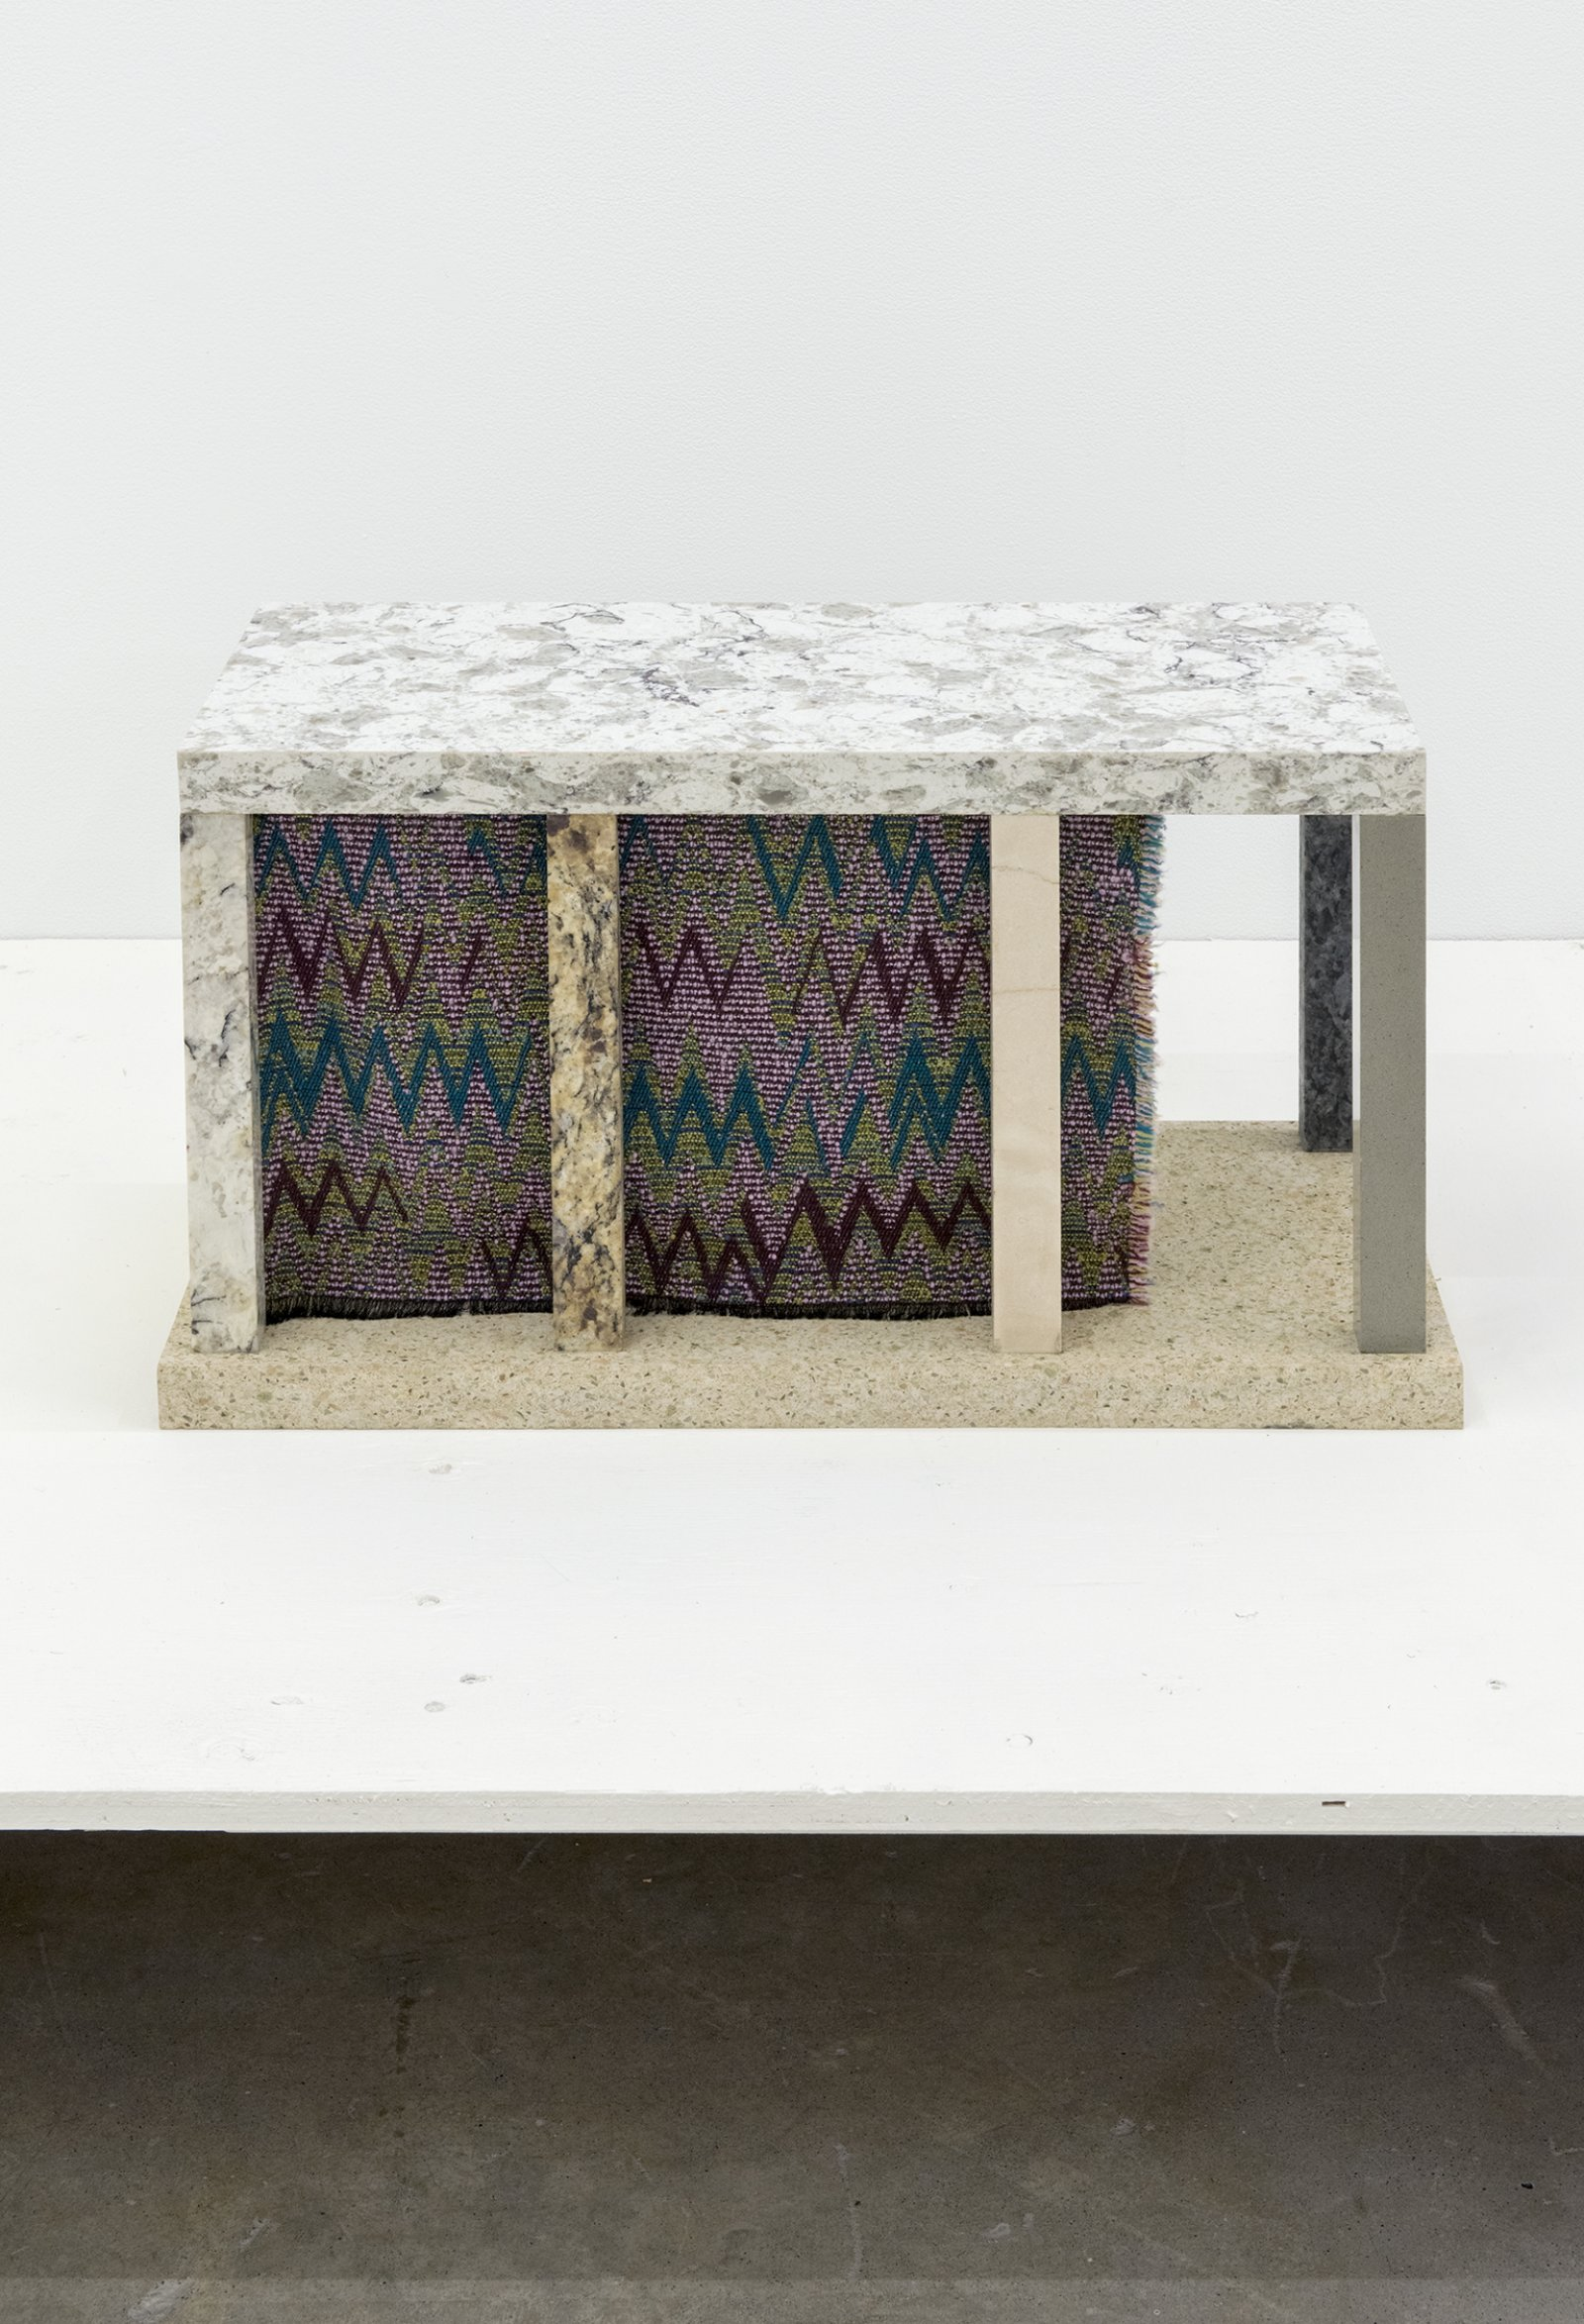 Gareth Moore, Old World CS-01 f, 2013, corian, stone, handkerchief, fabric from Turkish market, 13 x 23 x 11 in. (32 x 58 x 28 cm) by Ashes Withyman